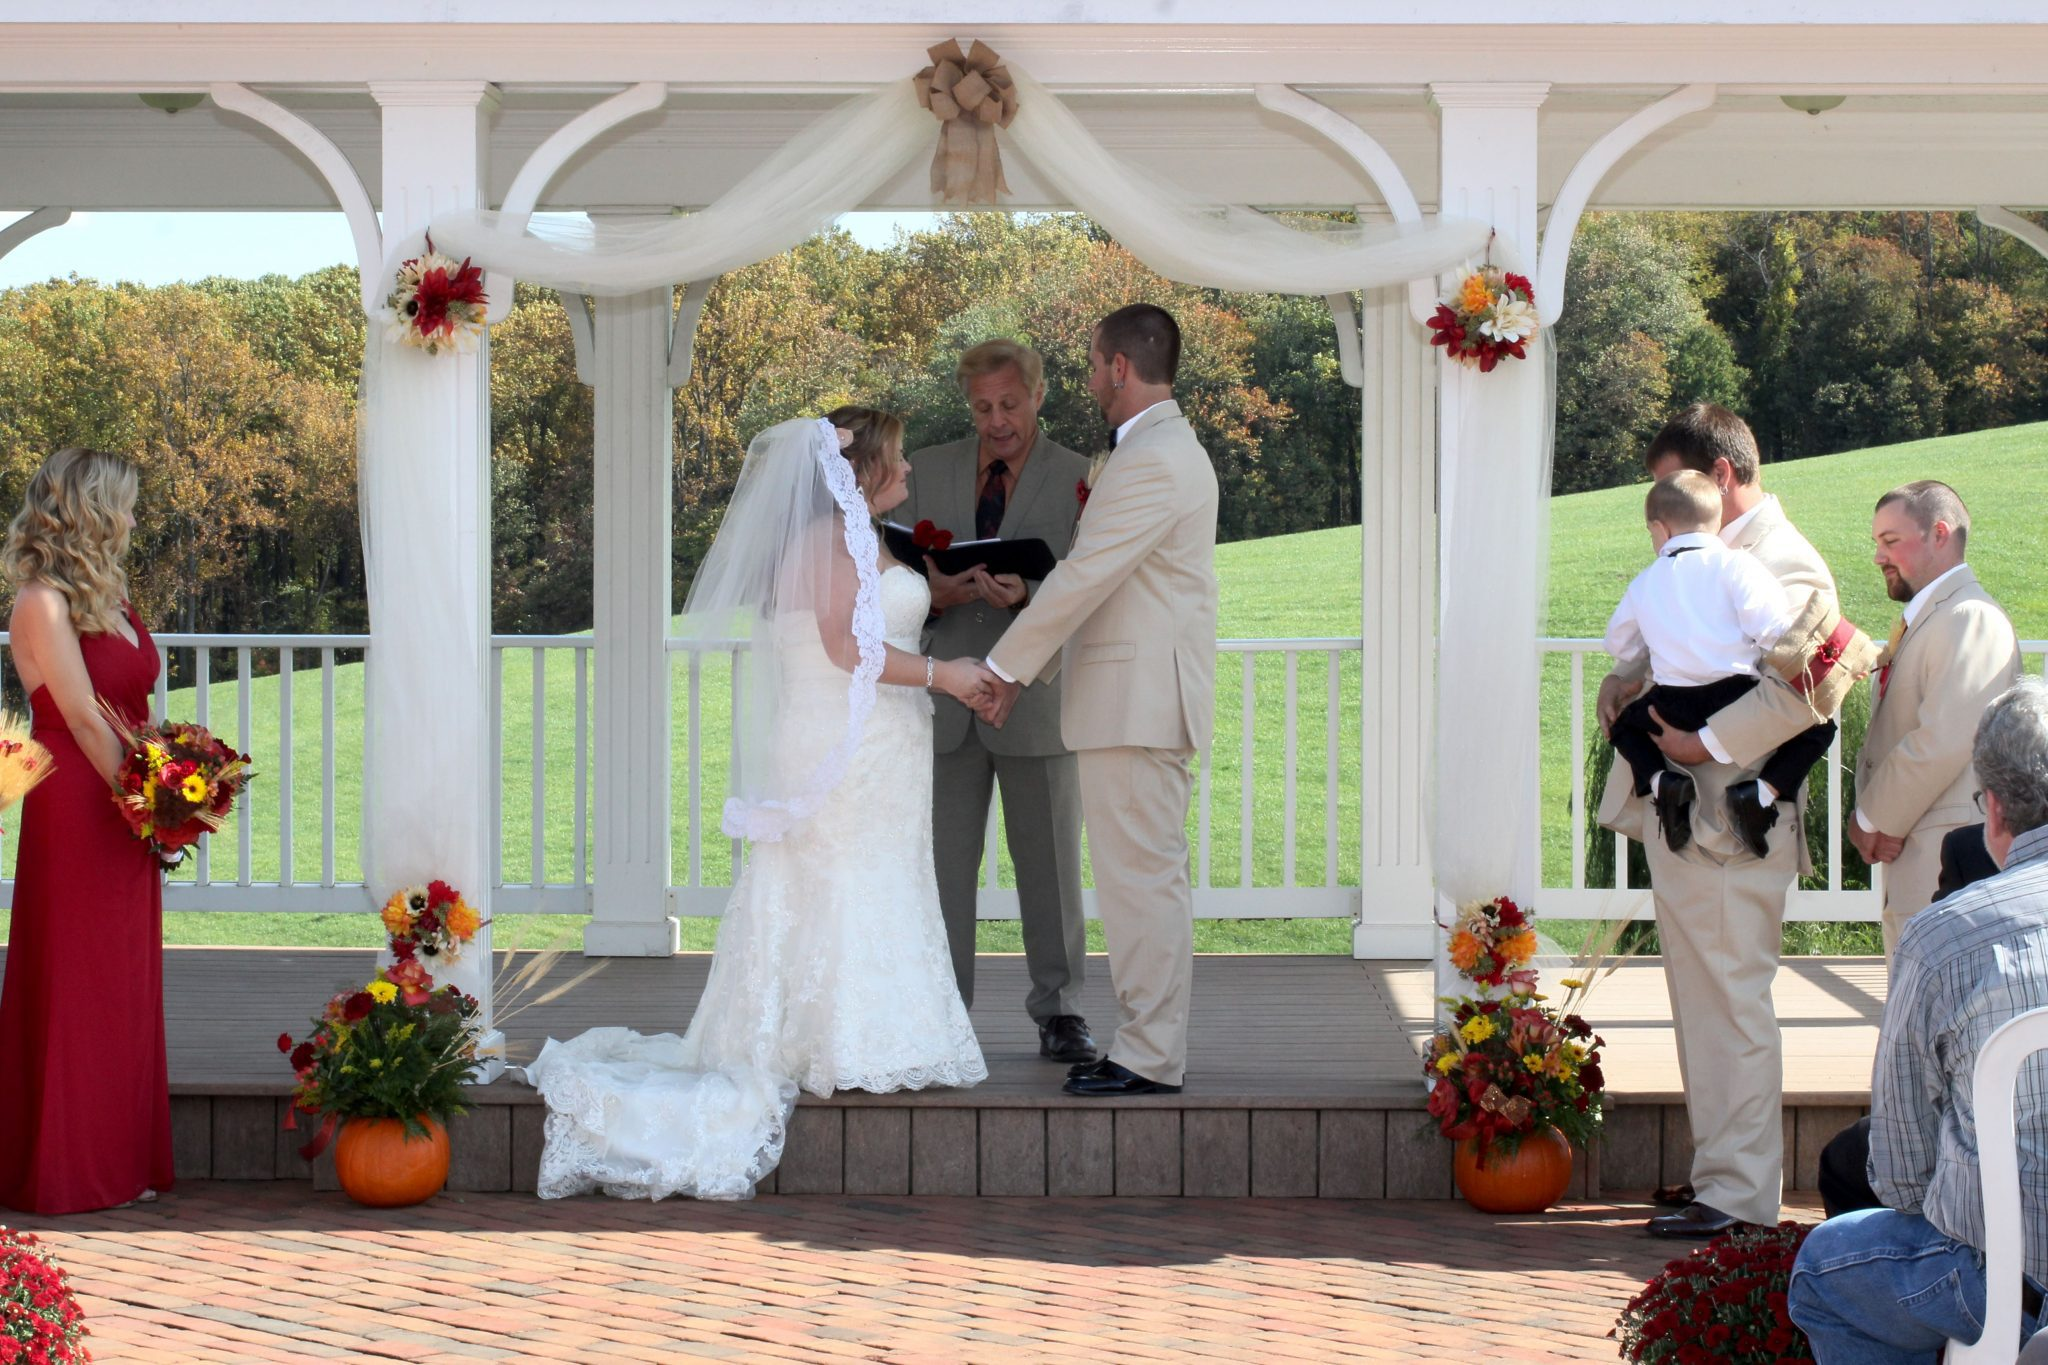 The couple exchange vows on the outdoor pavilion on a gorgeous fall day